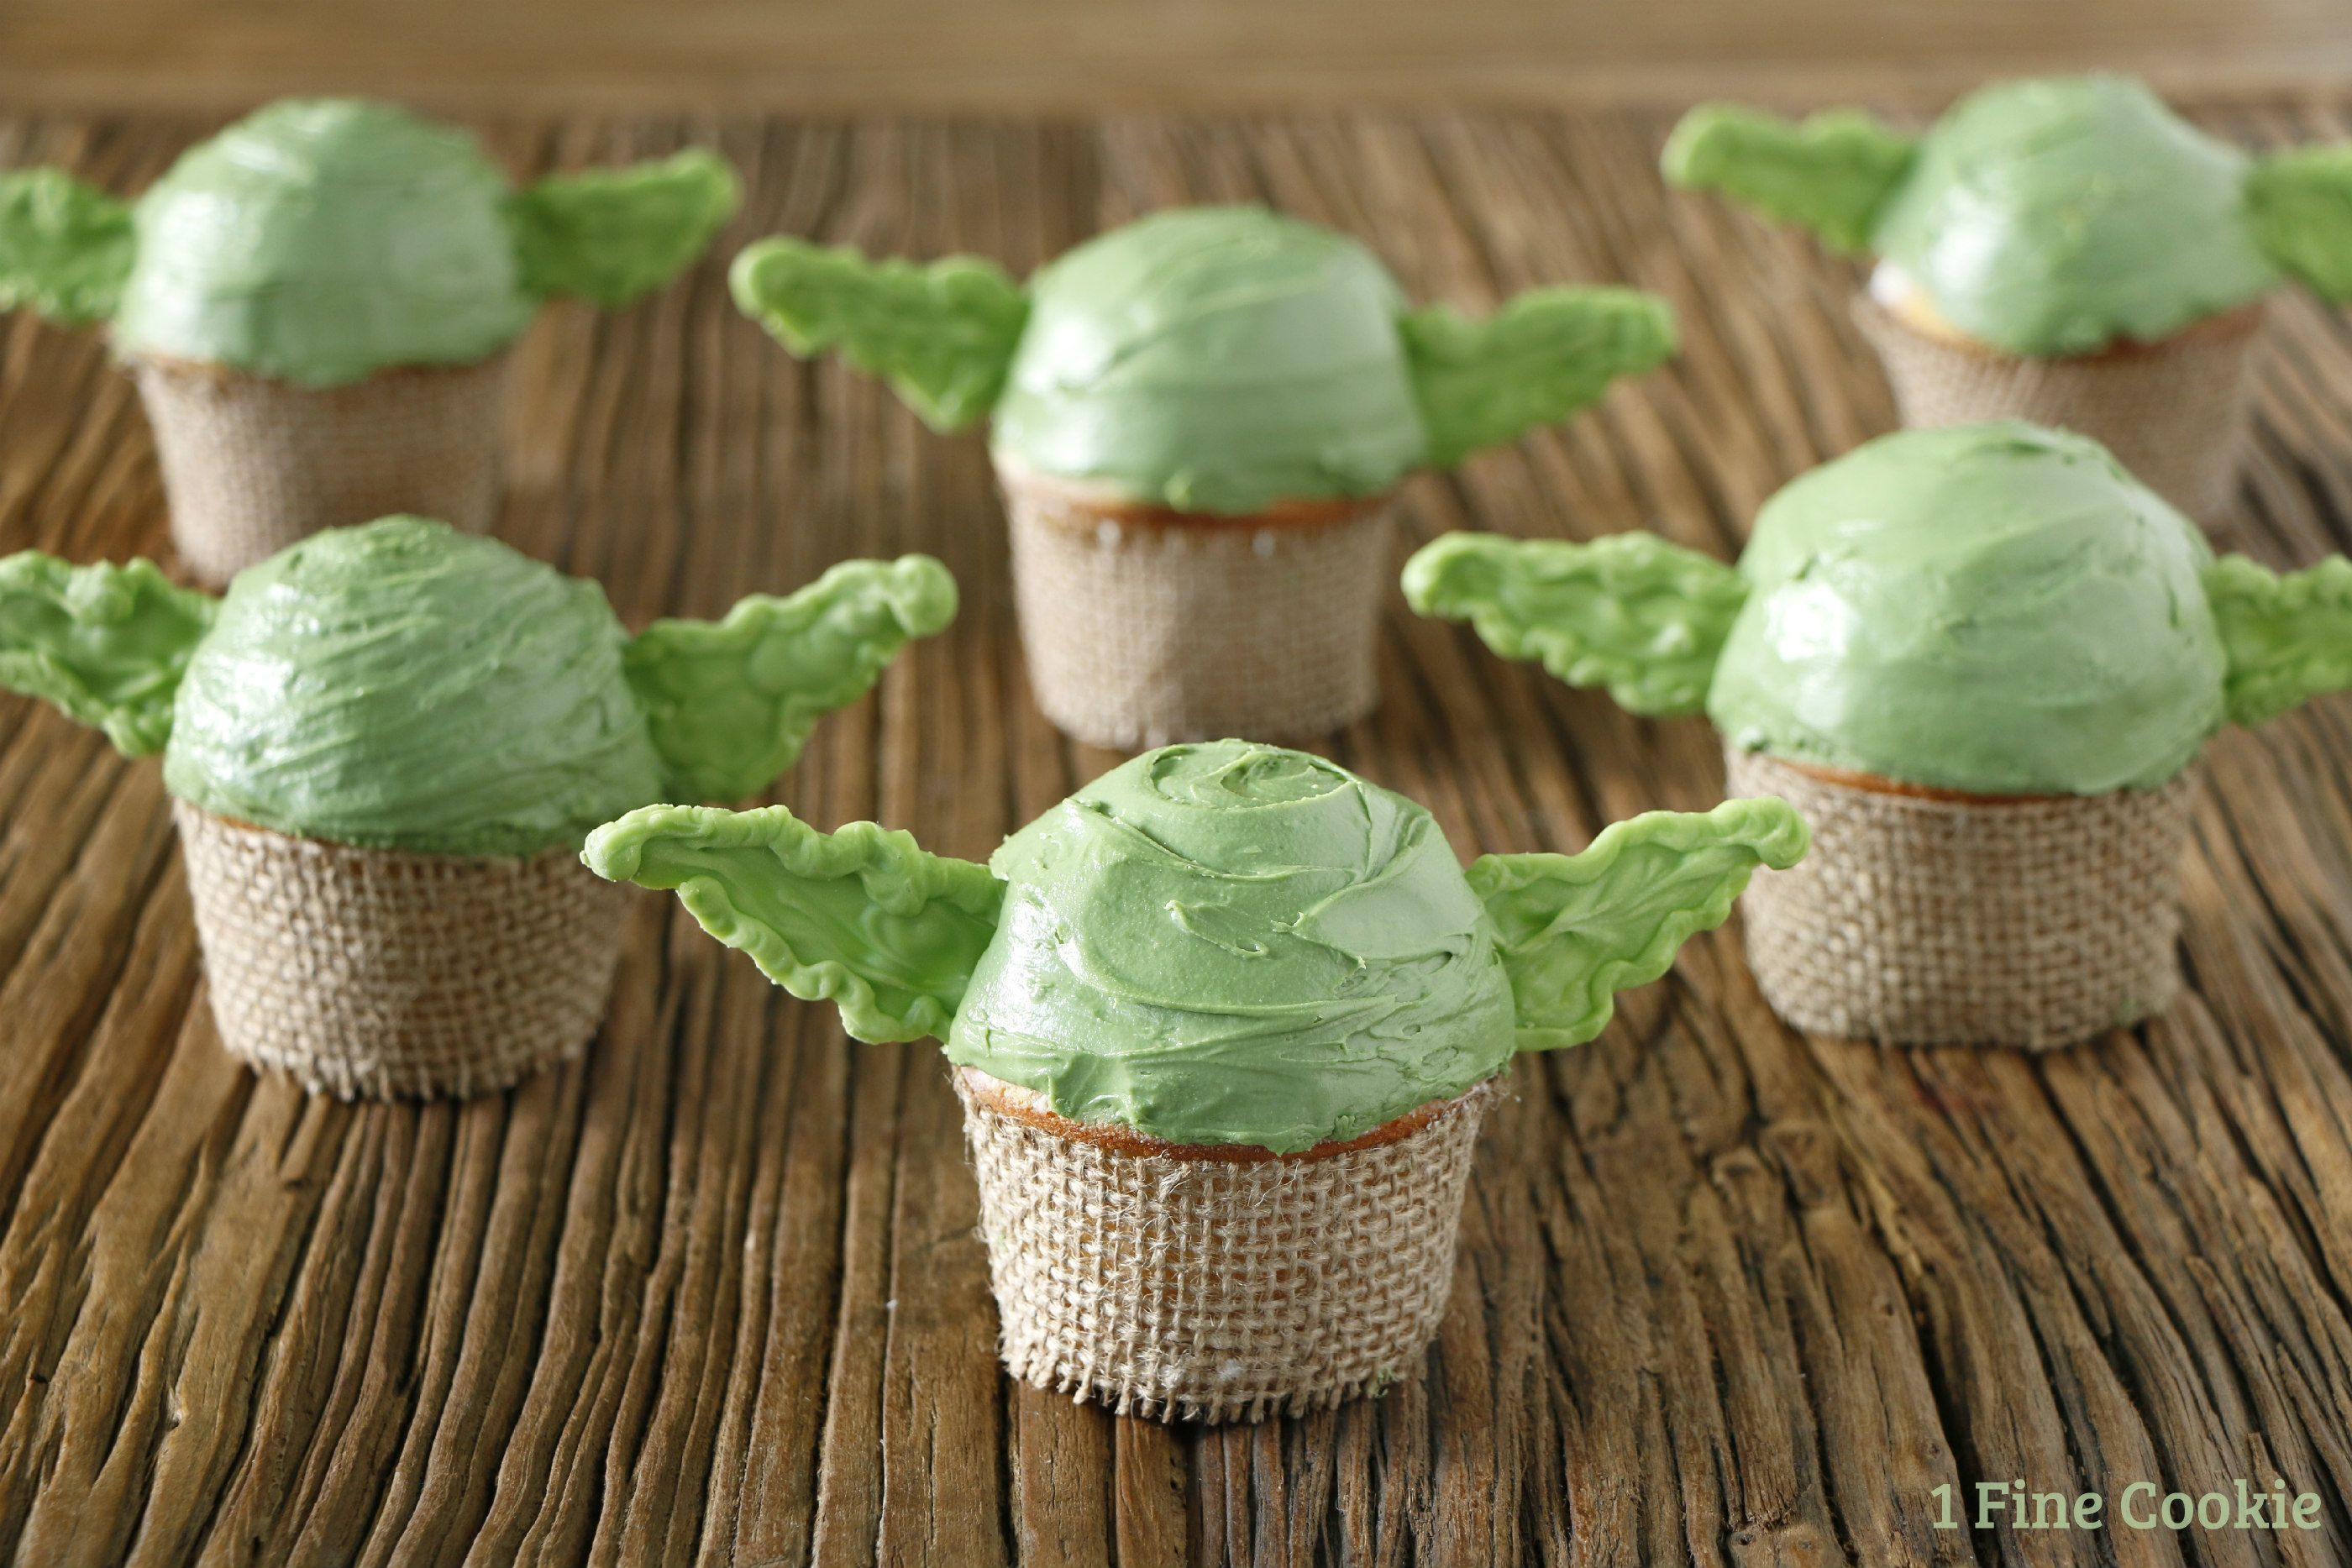 Star Wars Küche Super Easy And Cute Star Wars Yoda Cupcakes 1 Fine Cookie